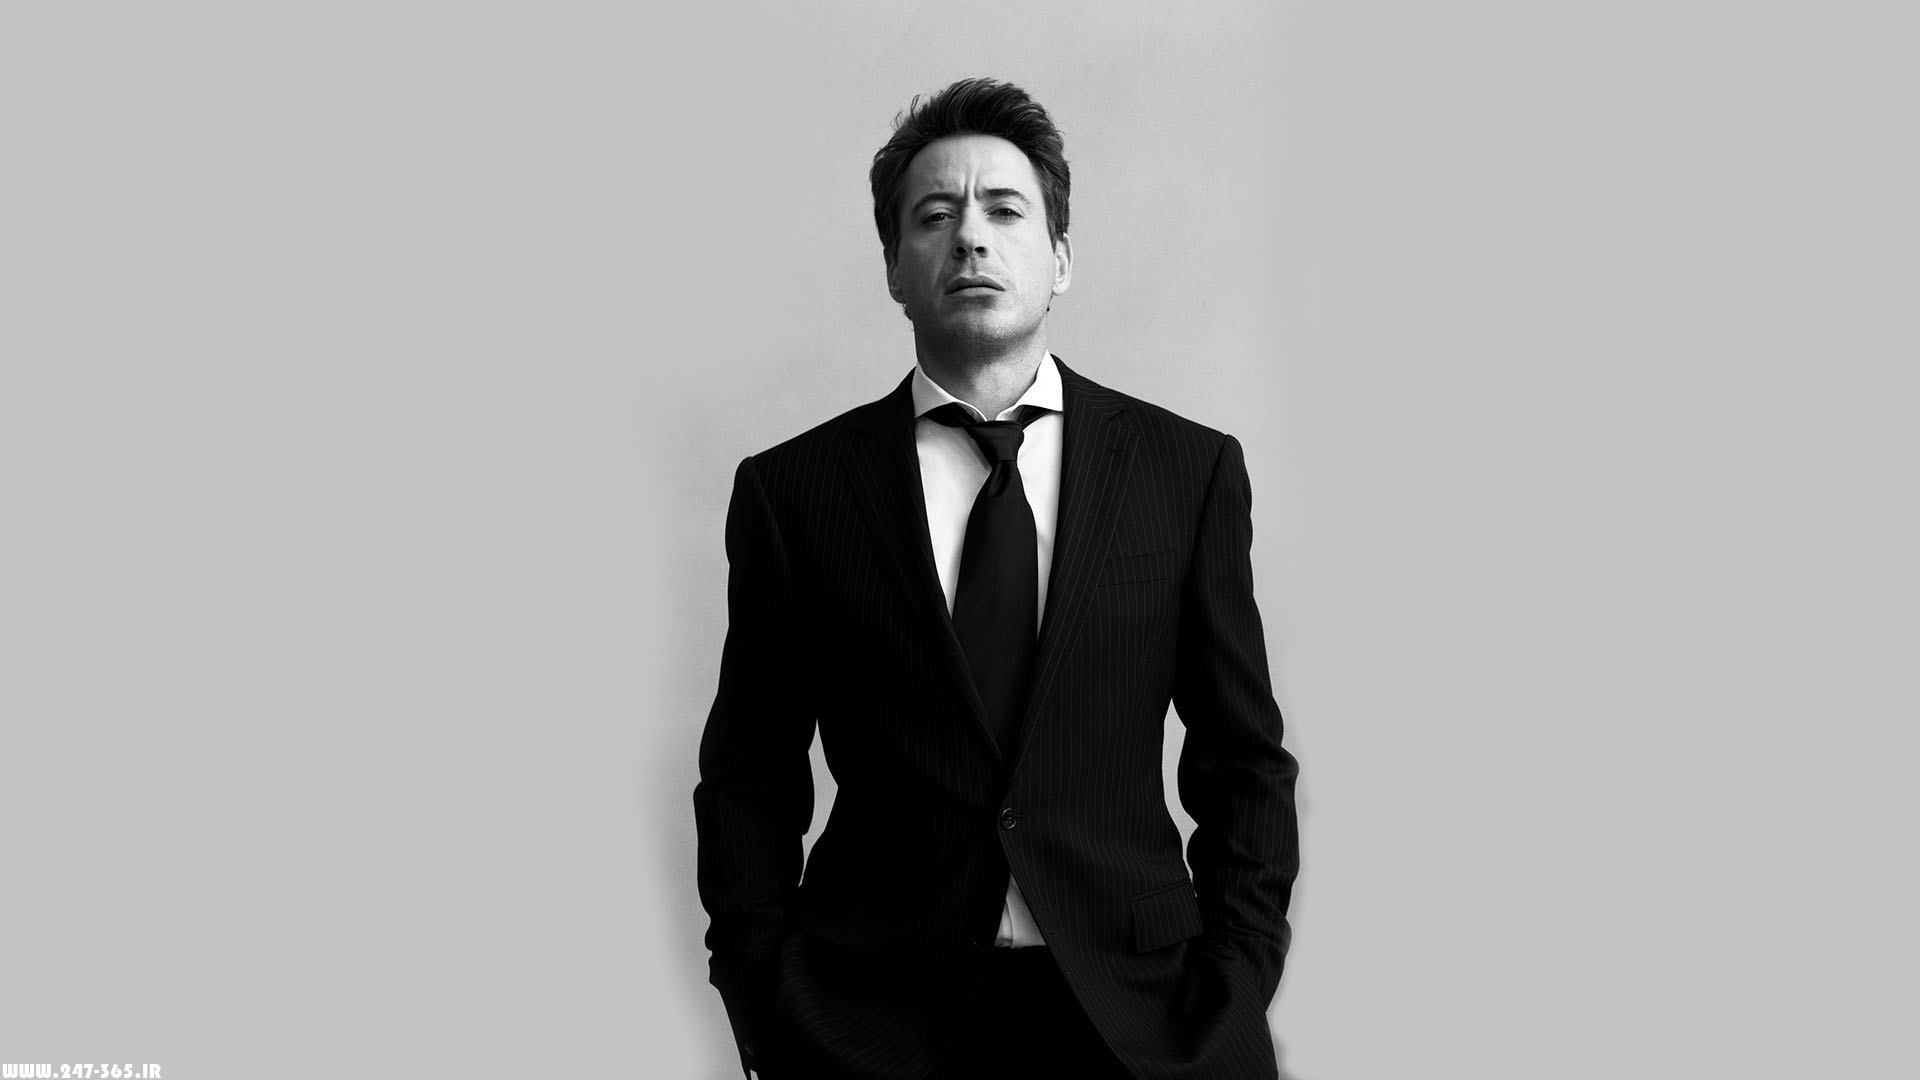 http://dl.247-365.ir/pic/celebrity/robert_downey_jr_3/Robert_Downey_Jr_3_02.jpg